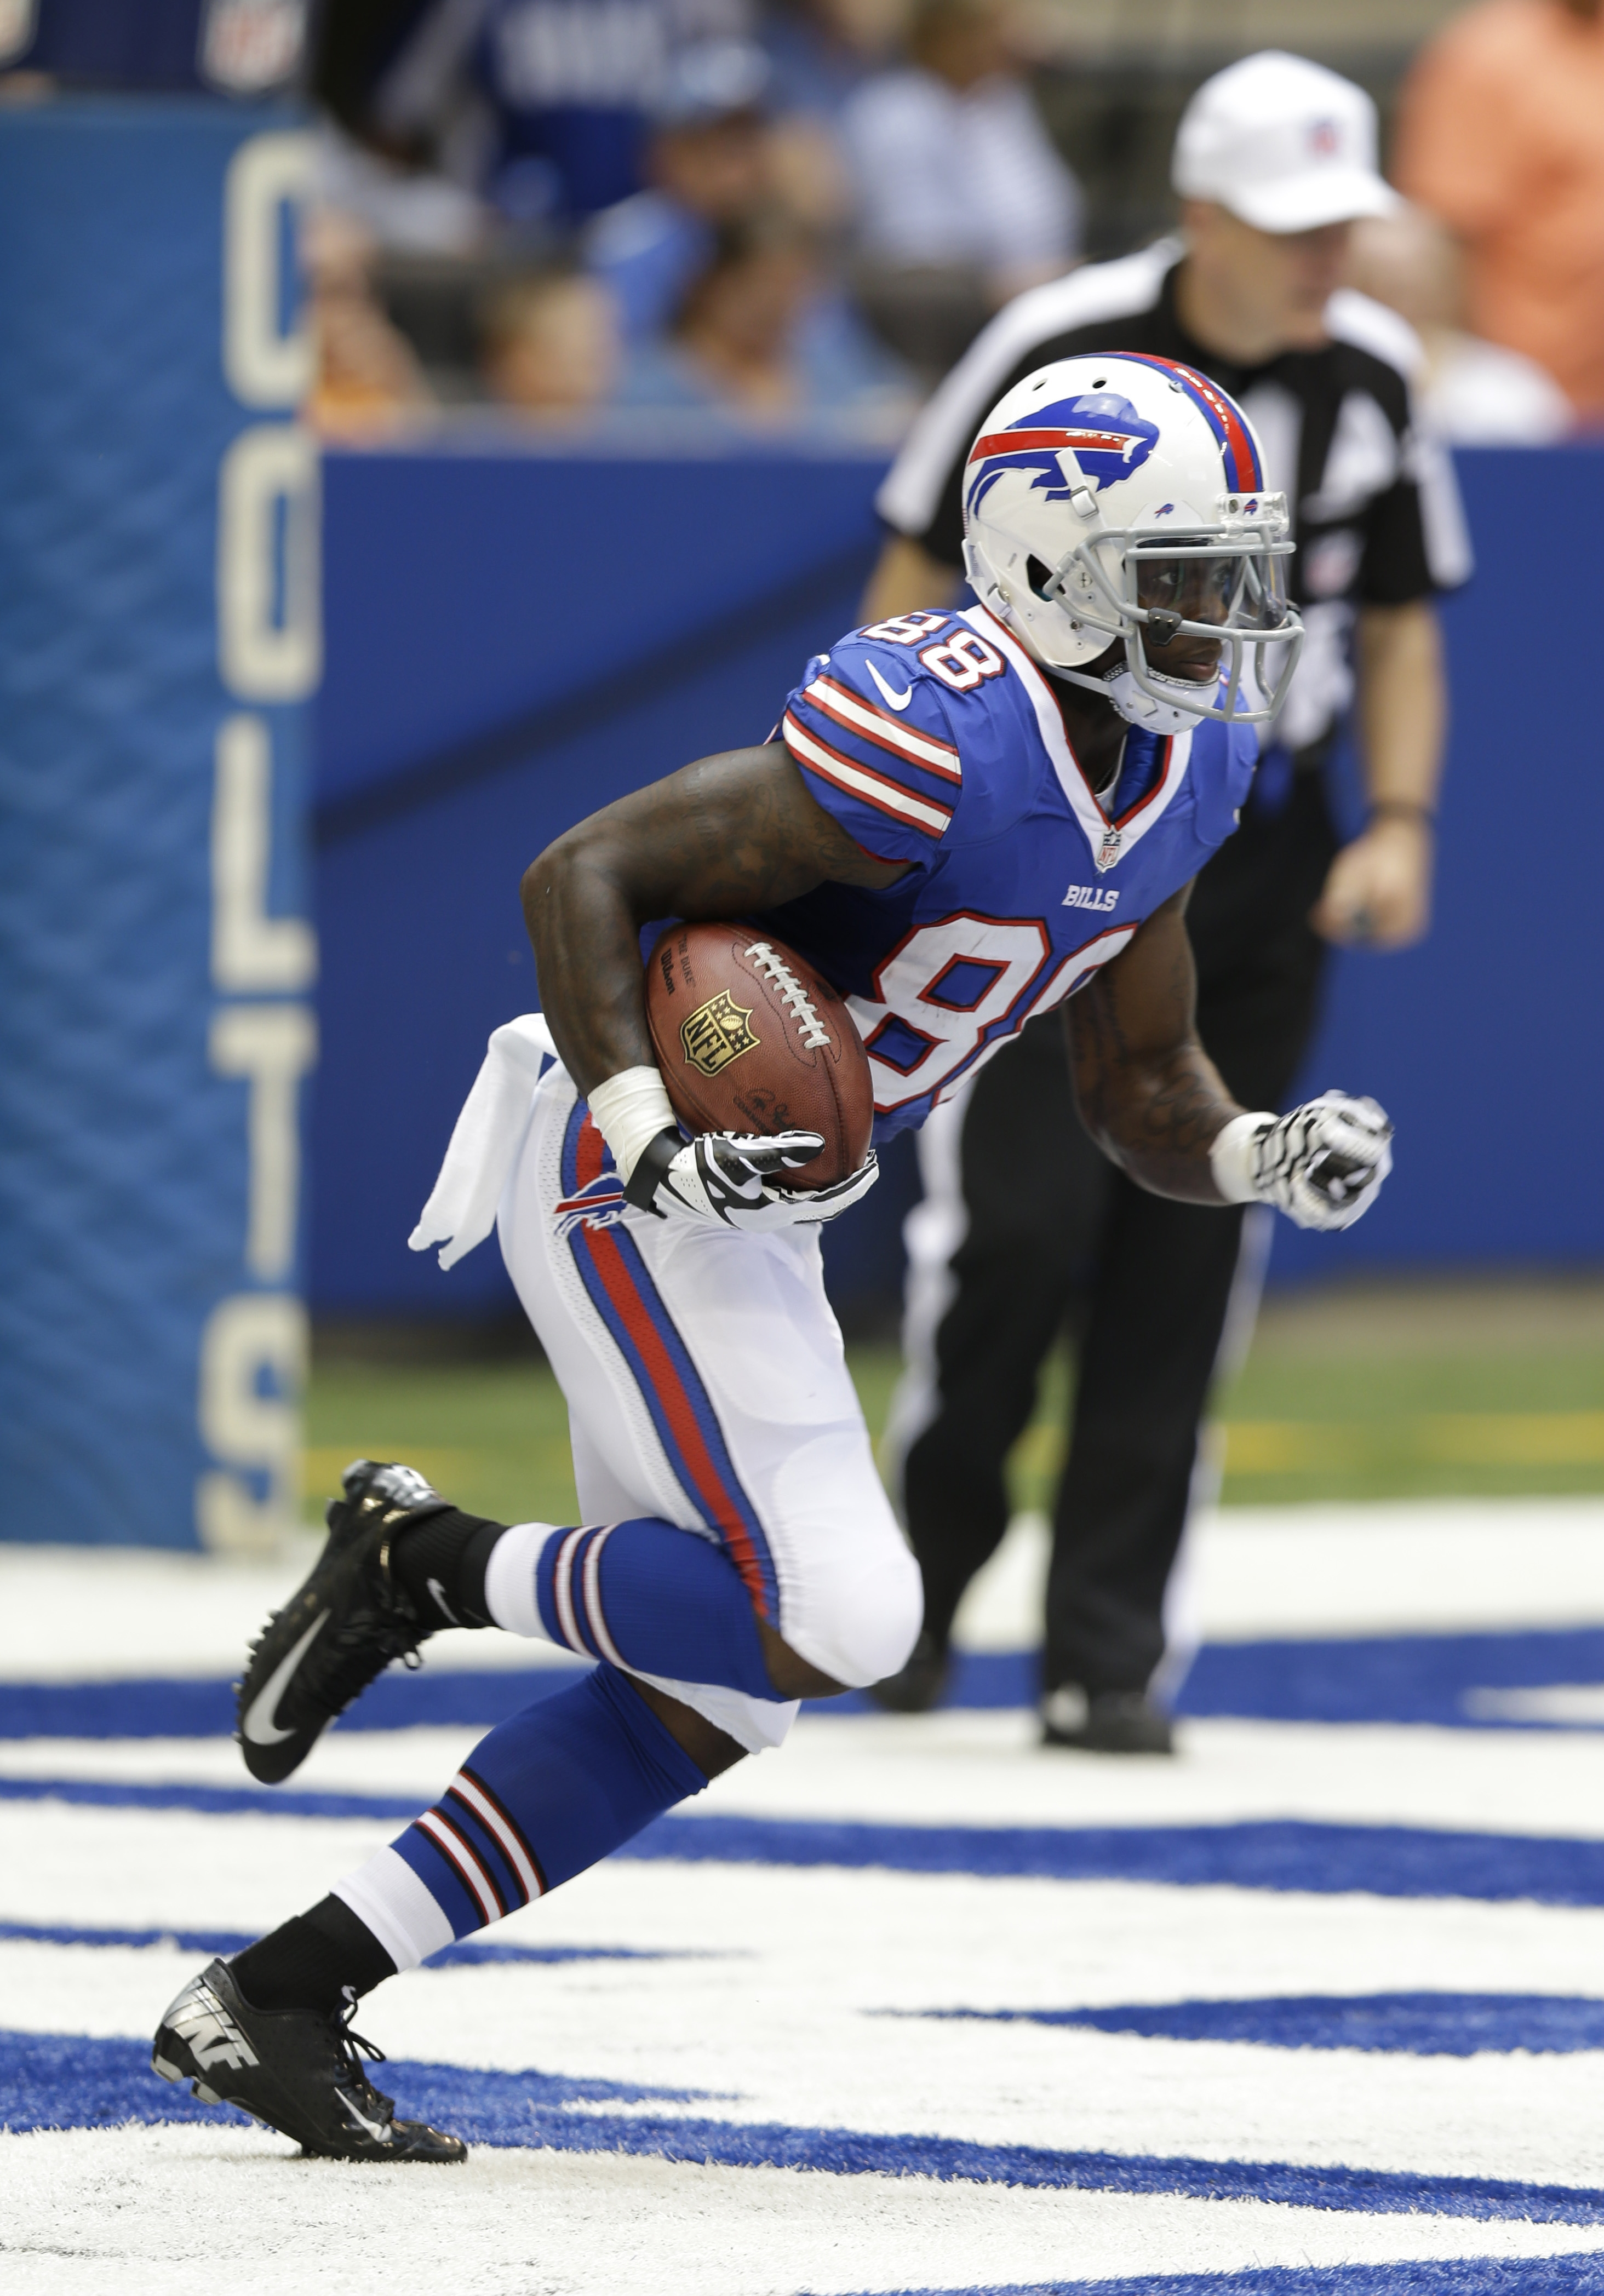 Bills rookie Marquise Goodwin heads out of the end zone on a kickoff return, reaching the other end zone 107 yards later.